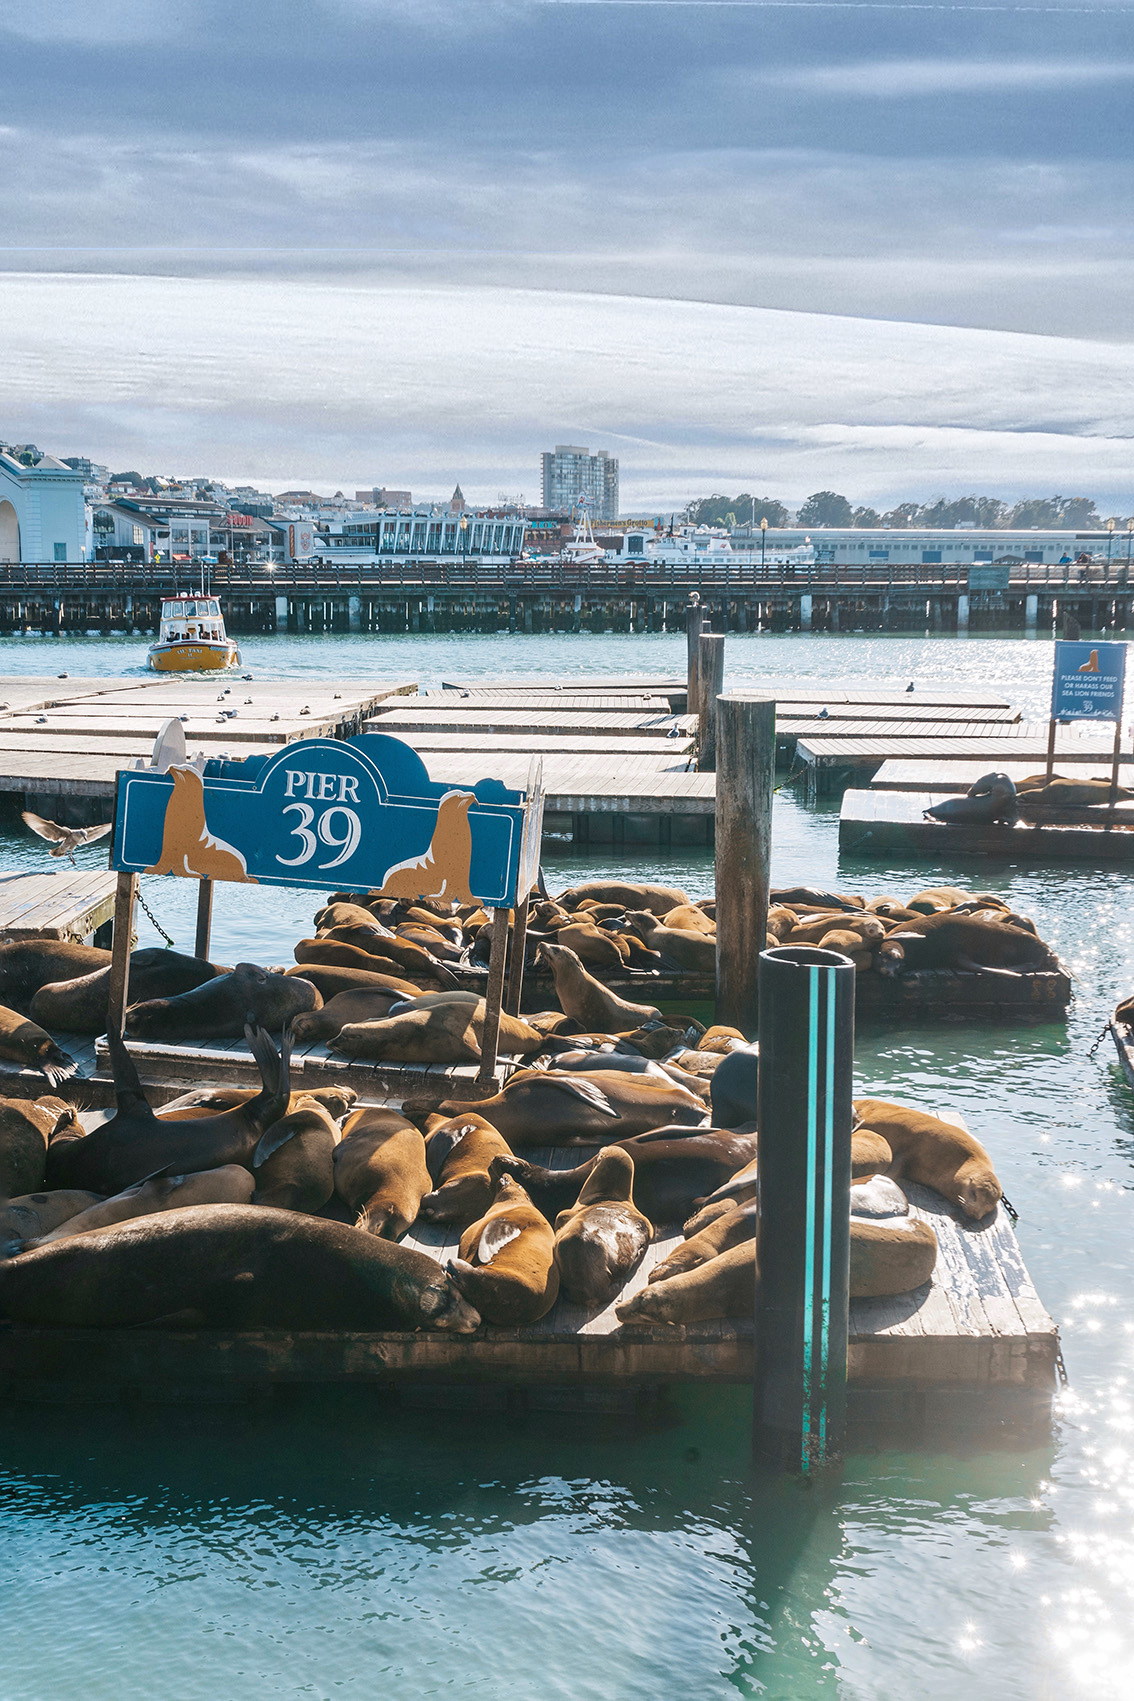 31 10 most instagrammable places in San Francisco you don't have to miss!